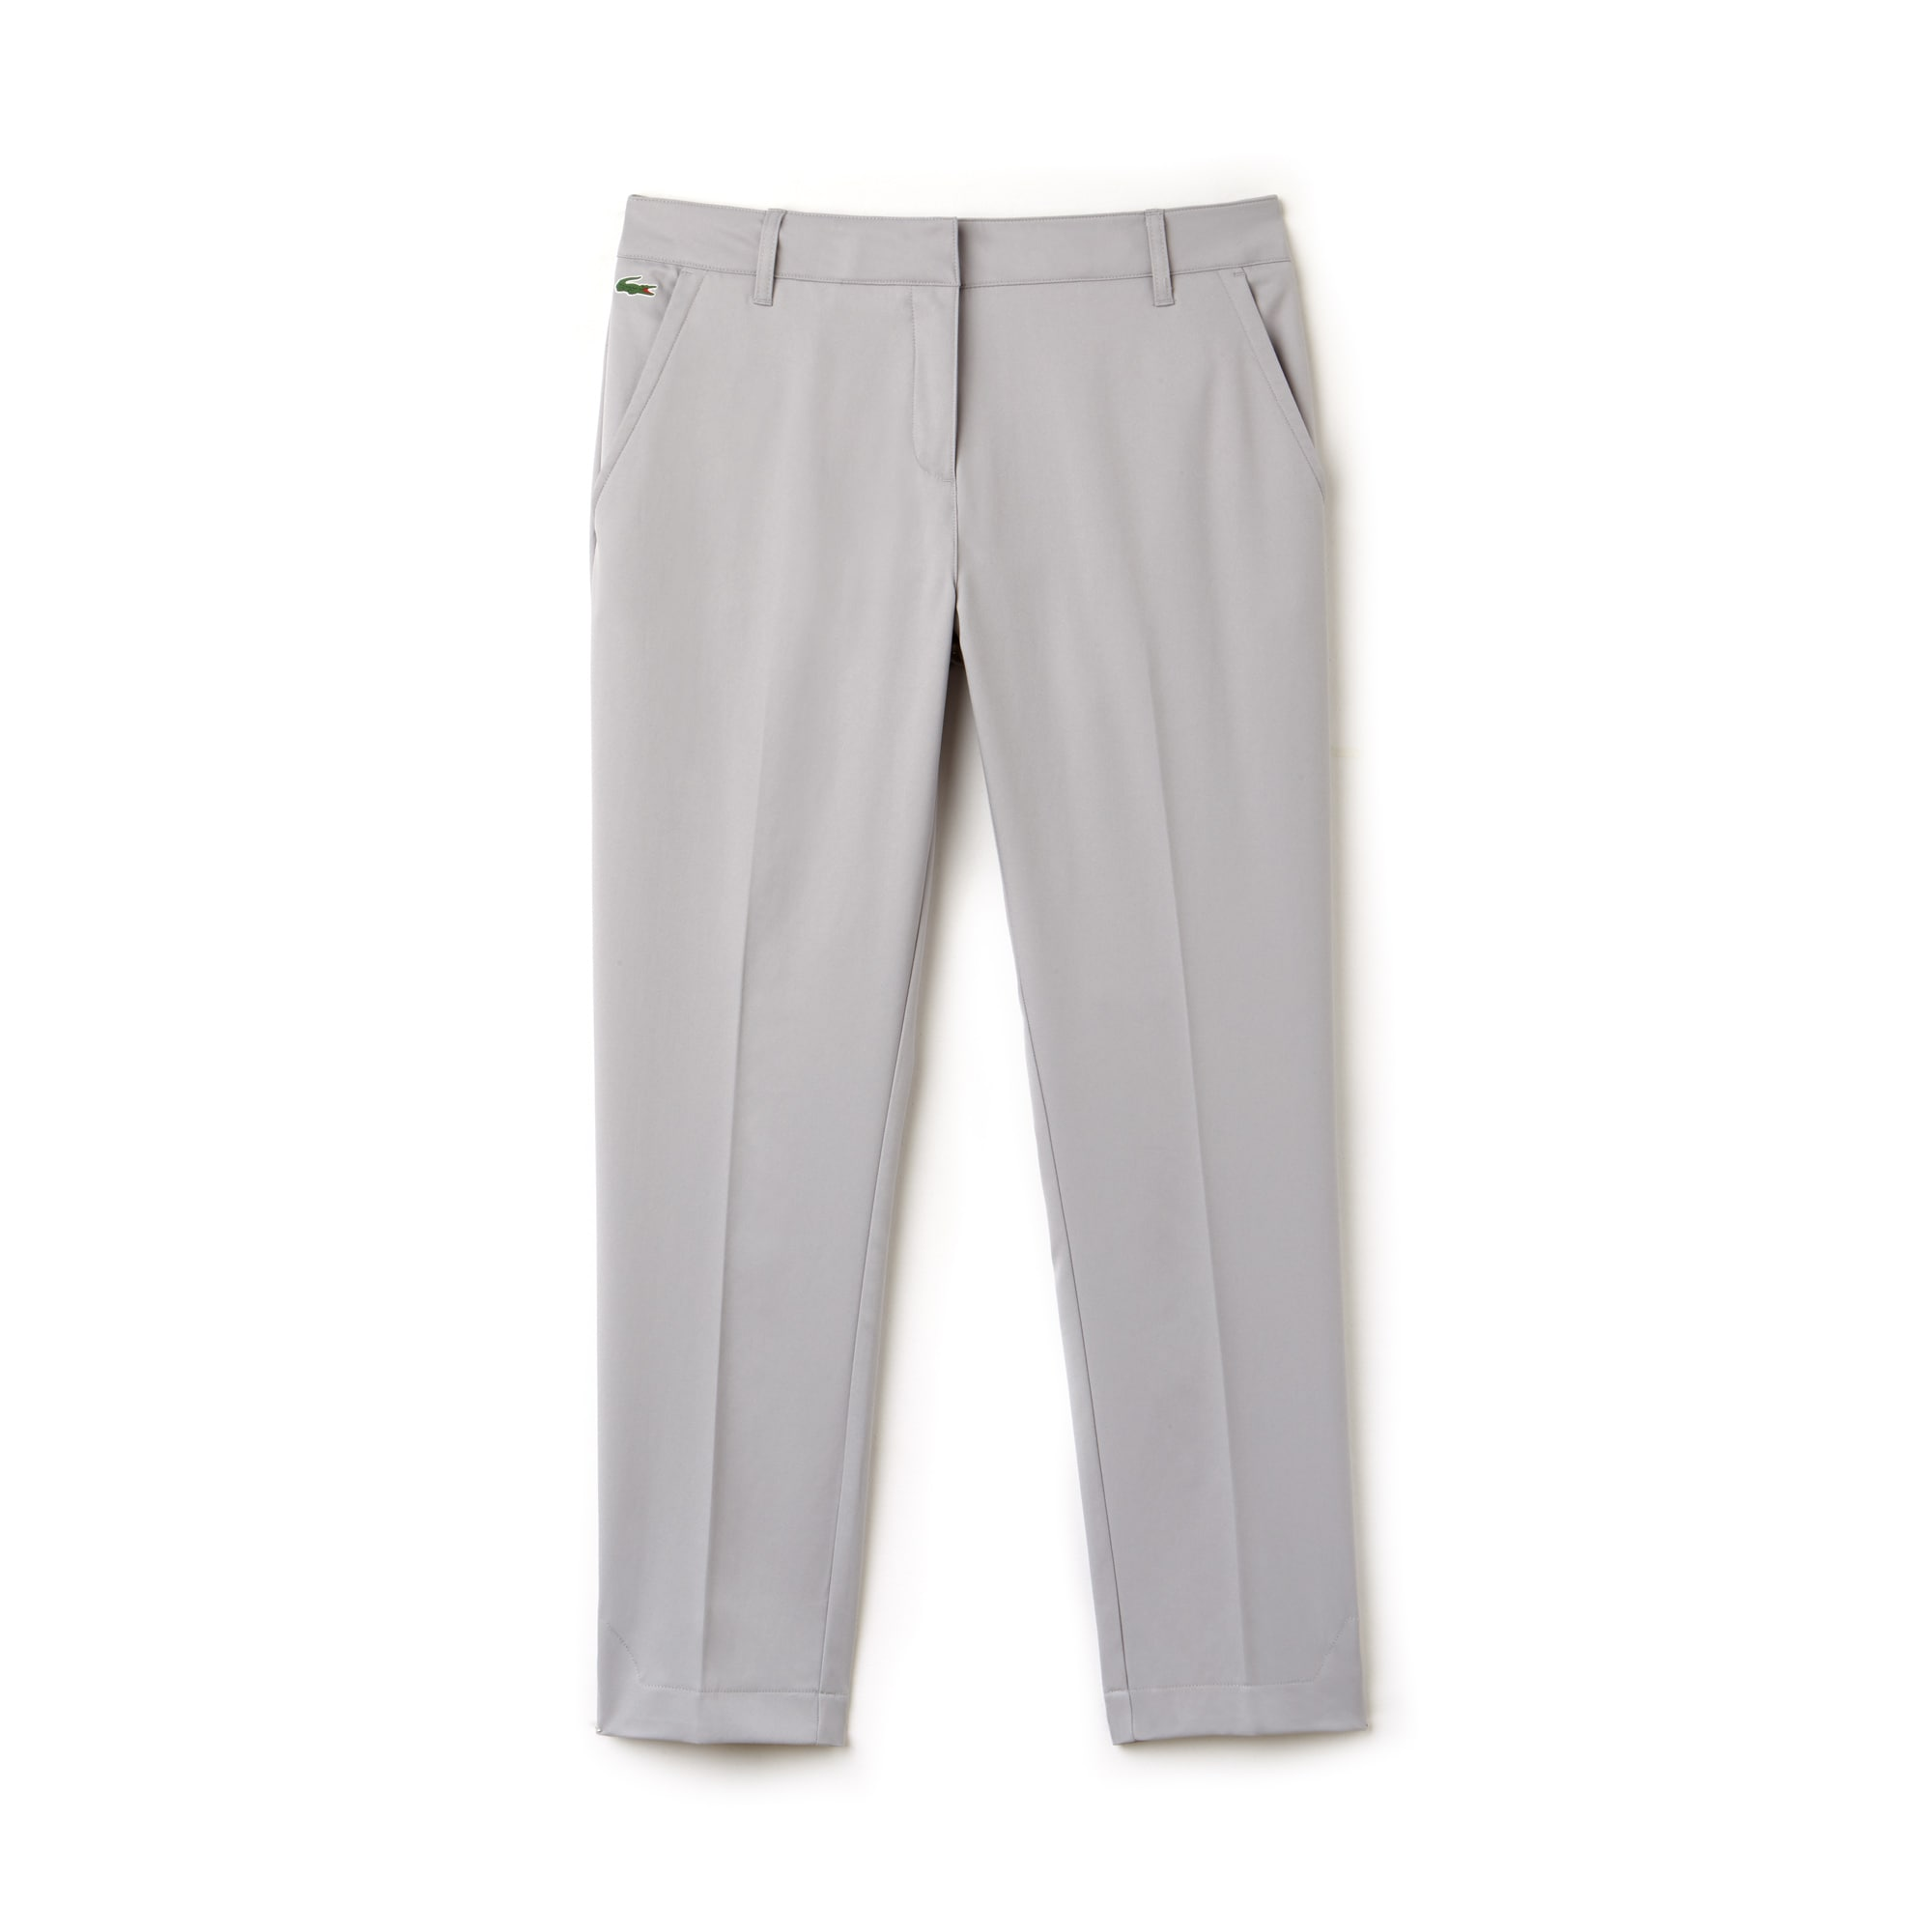 Women's Lacoste SPORT Ryder Cup Edition Pleated Tech Gabardine Golf Pants